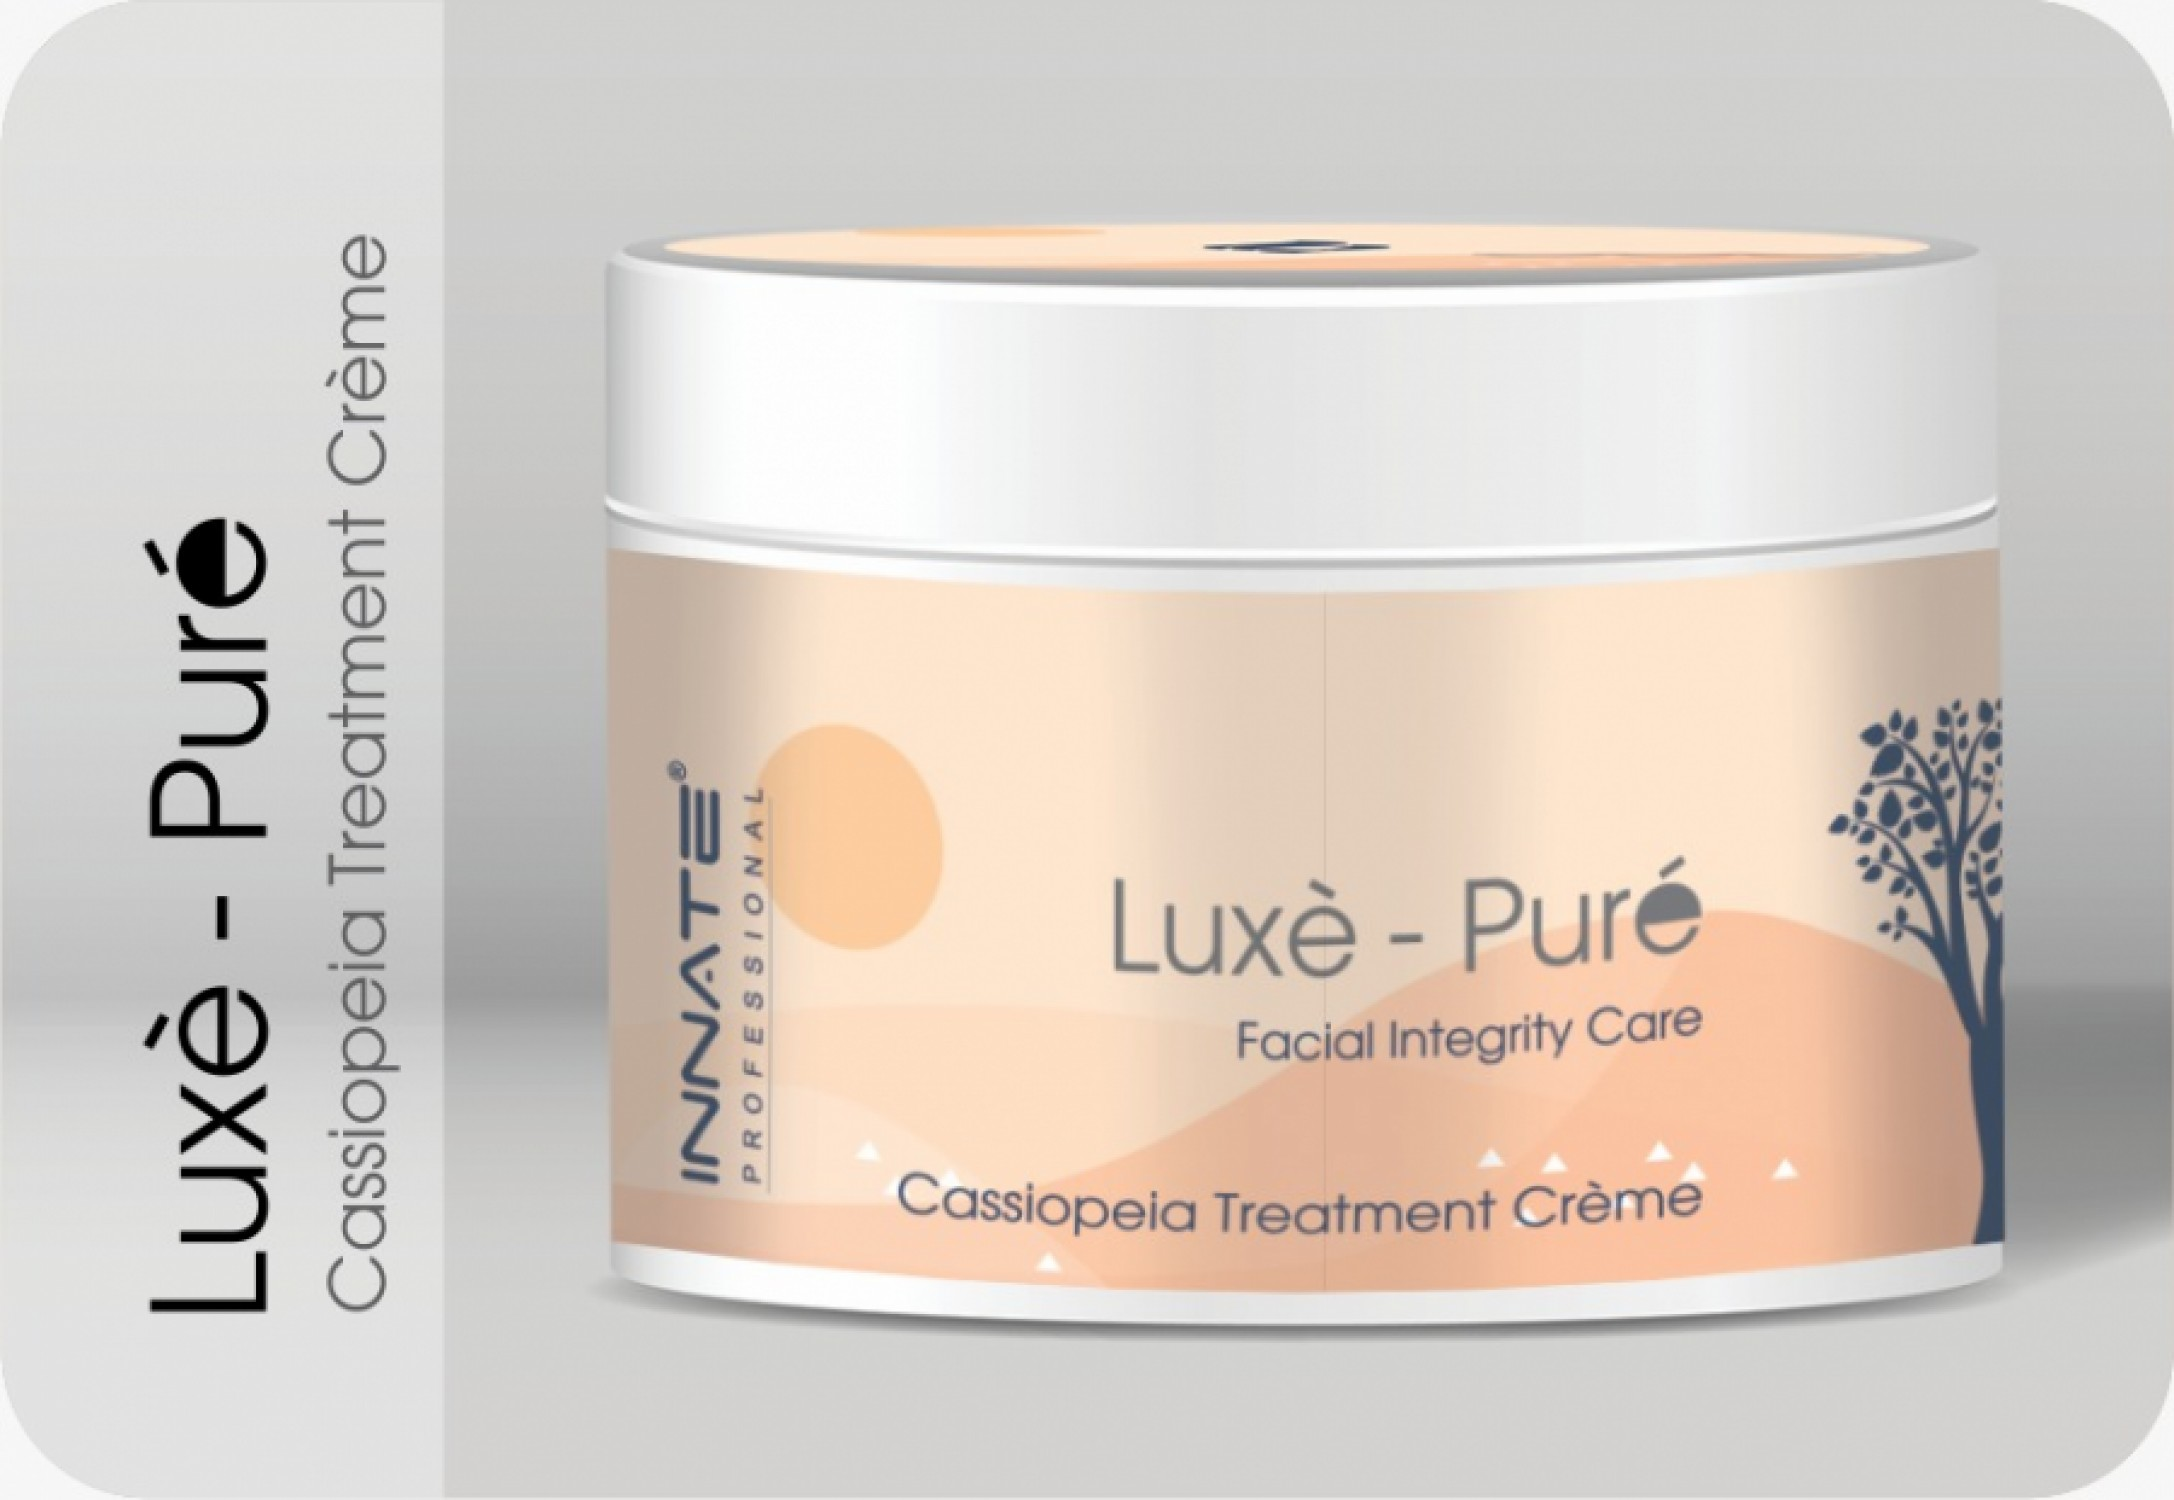 1599653737-h-1500-Cassiopeia Treatment Creme.jpeg